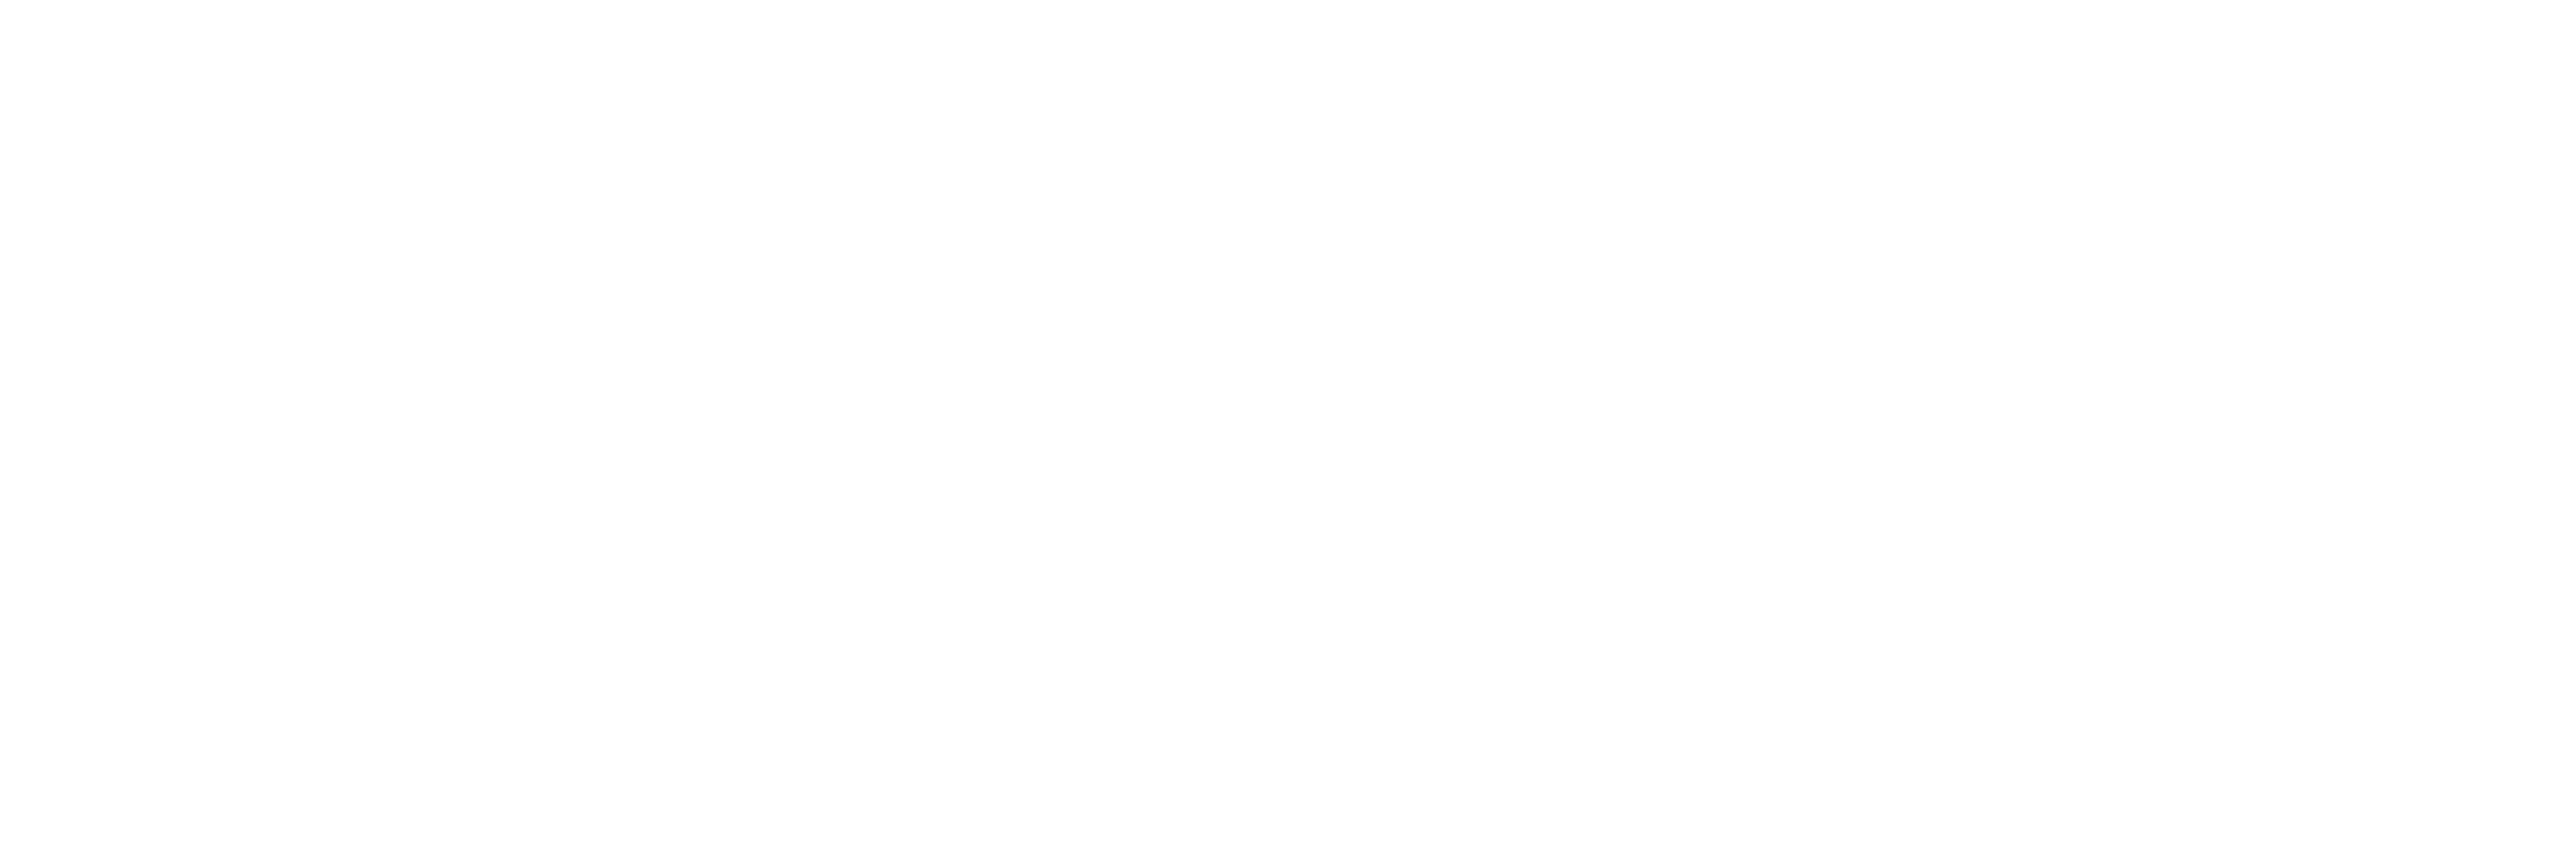 Diamond Hills Management